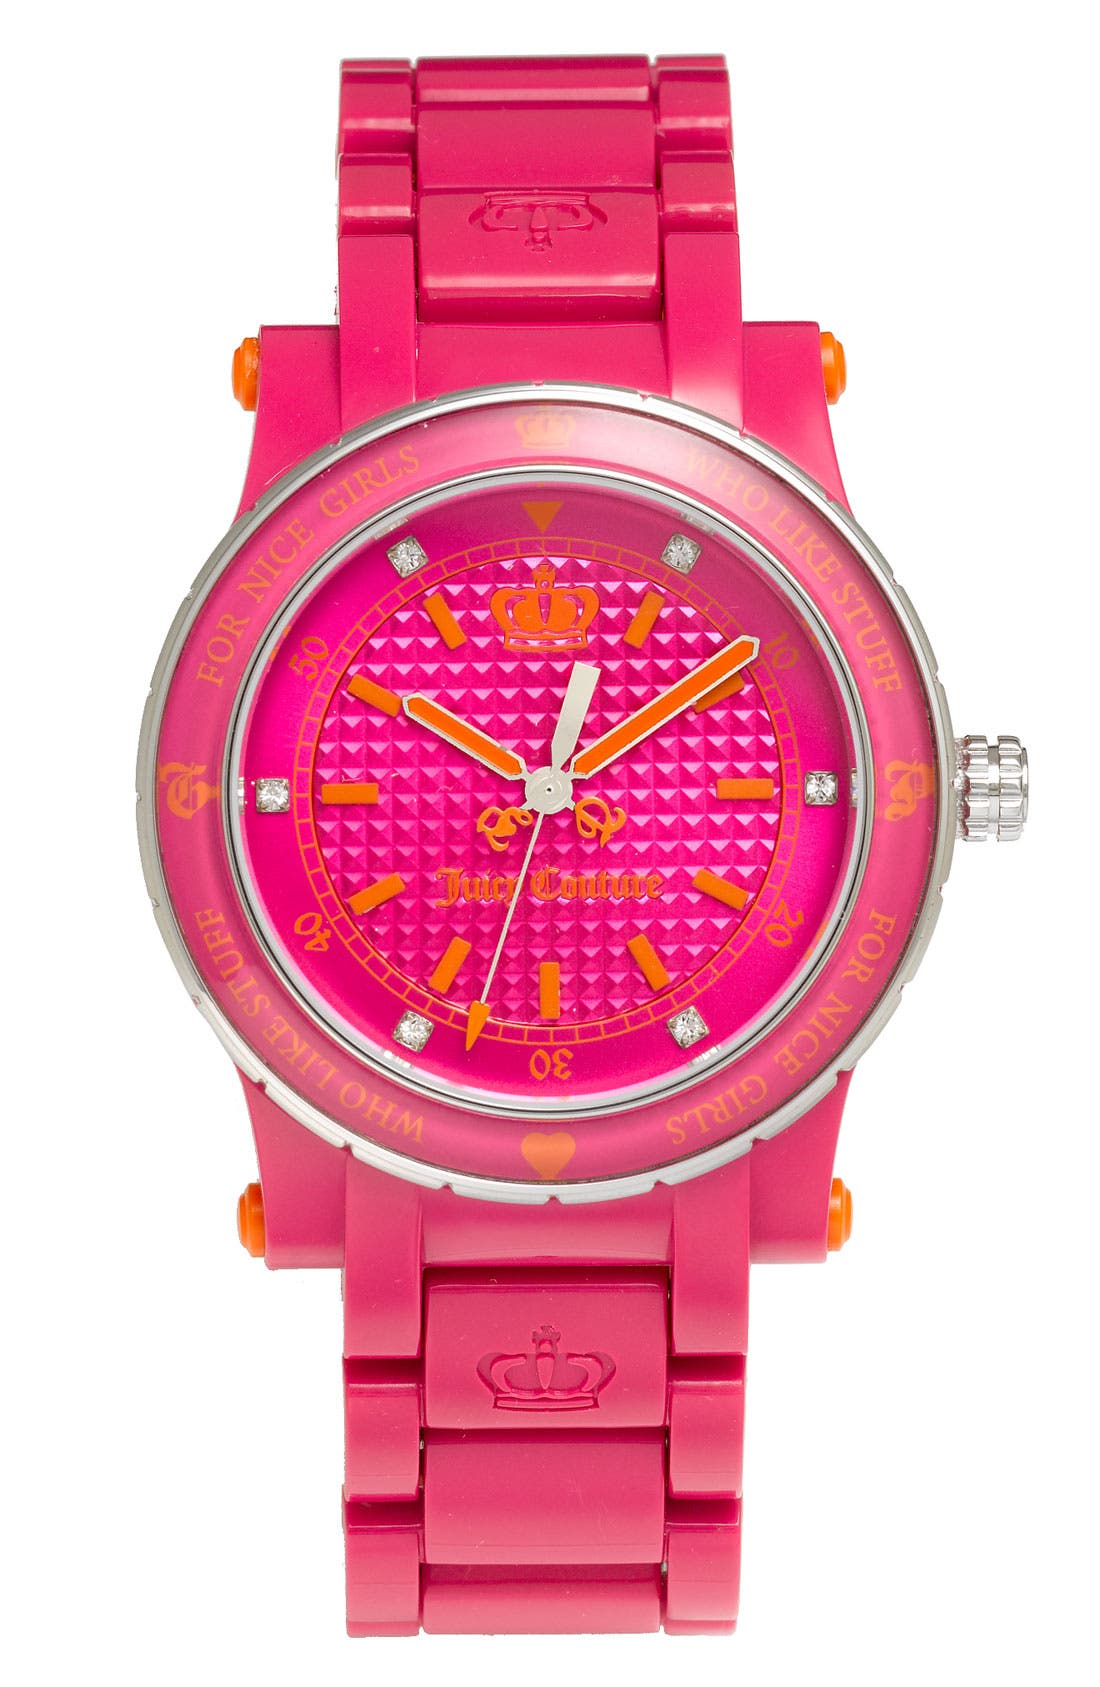 Main Image - Juicy Couture 'Her Royal Highness' Plastic Watch